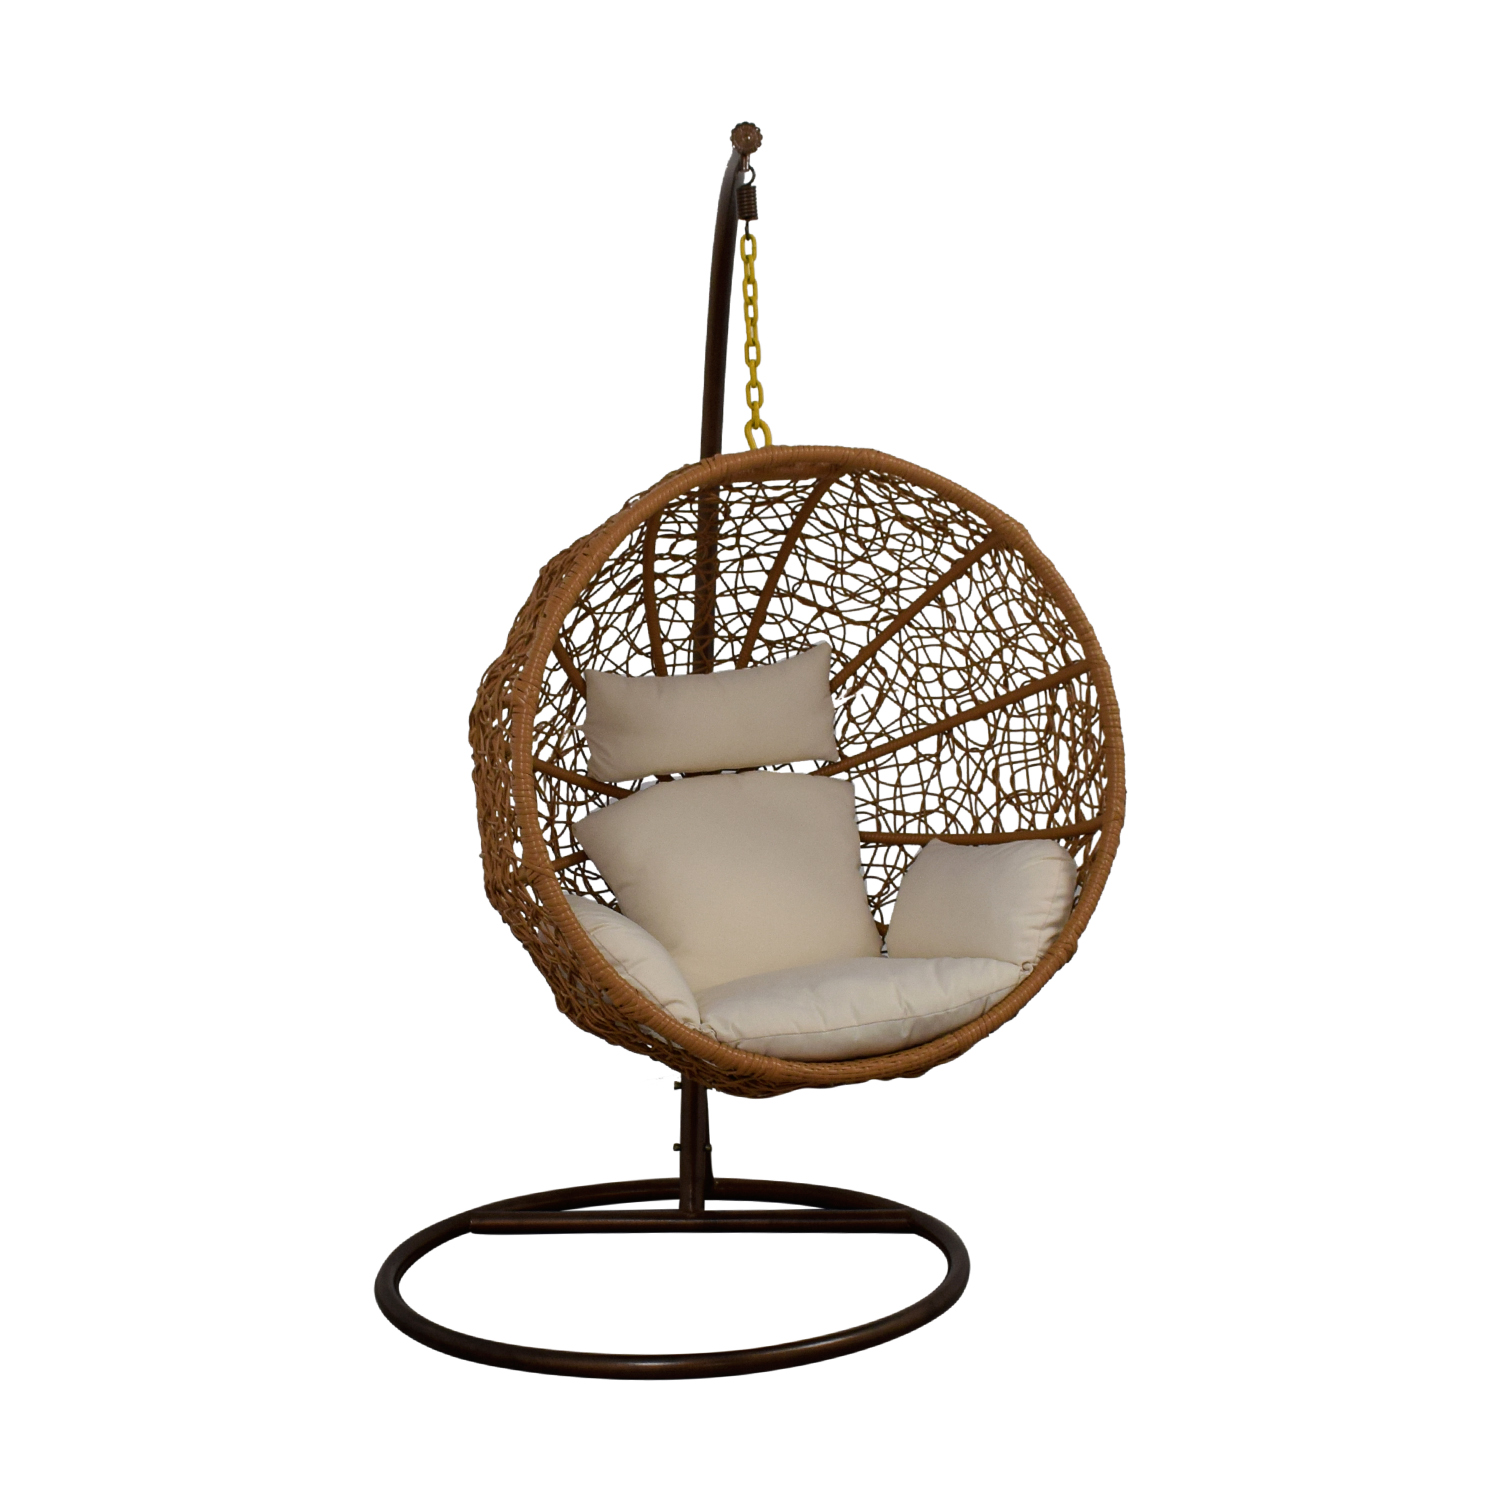 74 Off Ceets Zolo Outdoor Wicker Hanging Lounge Chair Chairs